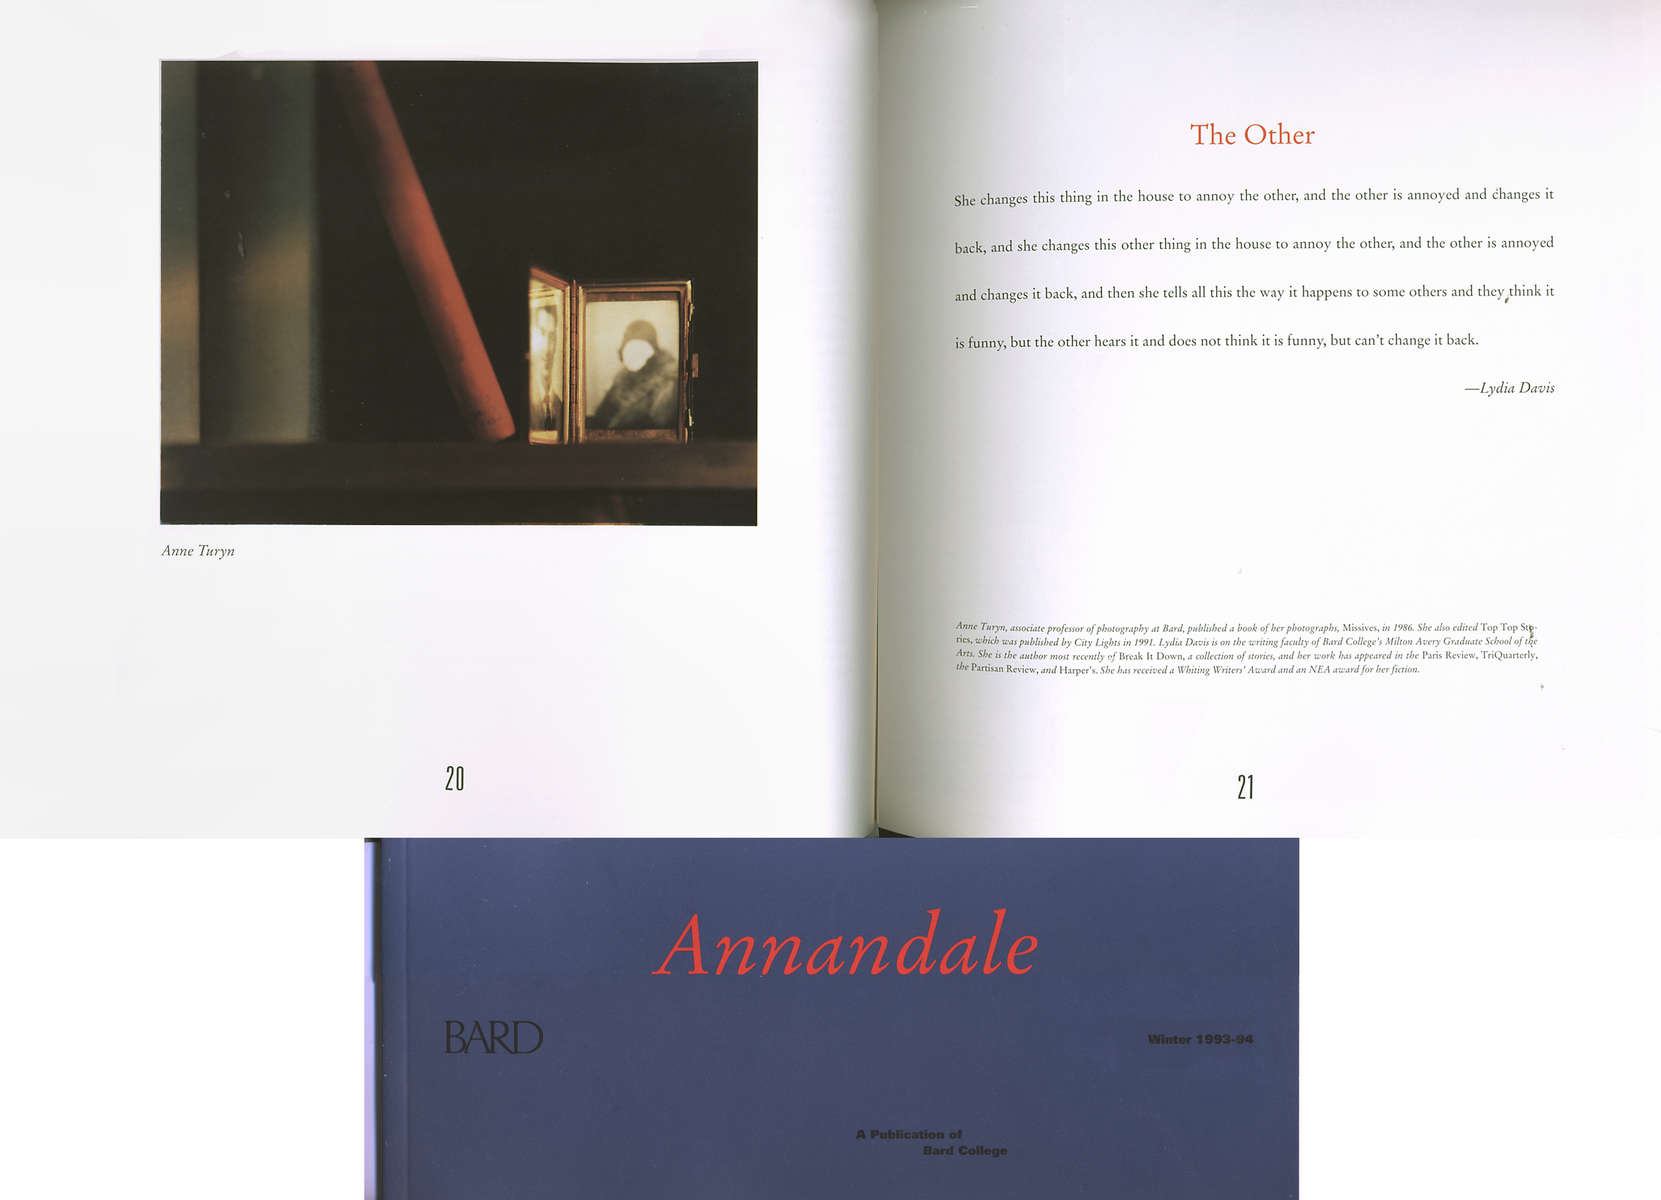 Annandale Volume 133/Number 1, 1993Ginger Shore, editorimage  by Anne Turyn, page 20text by Lydia Davis, page 21